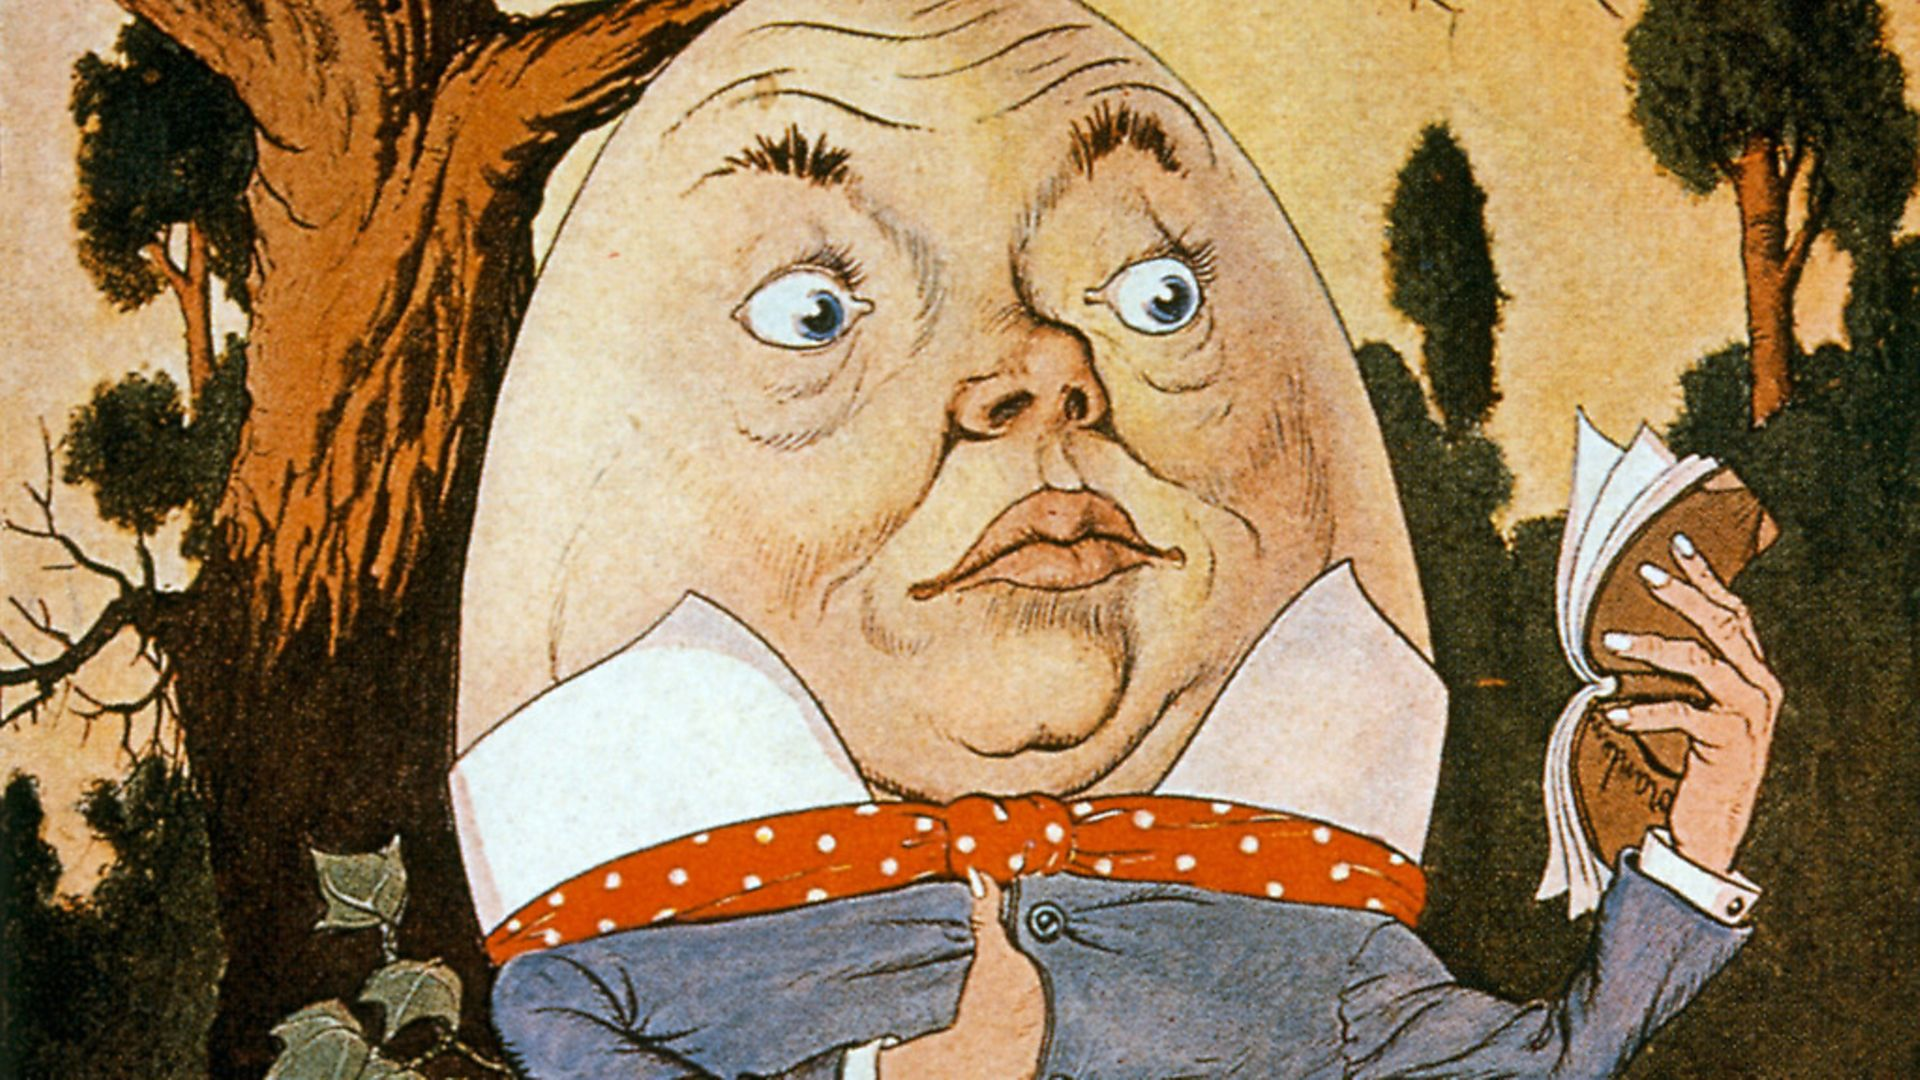 Humpty Dumpty Sitting on a Wall, illustration by Milo Winter, 1916. Photo by: Universal History Archive/Universal Images Group via Getty Images - Credit: Universal Images Group via Getty